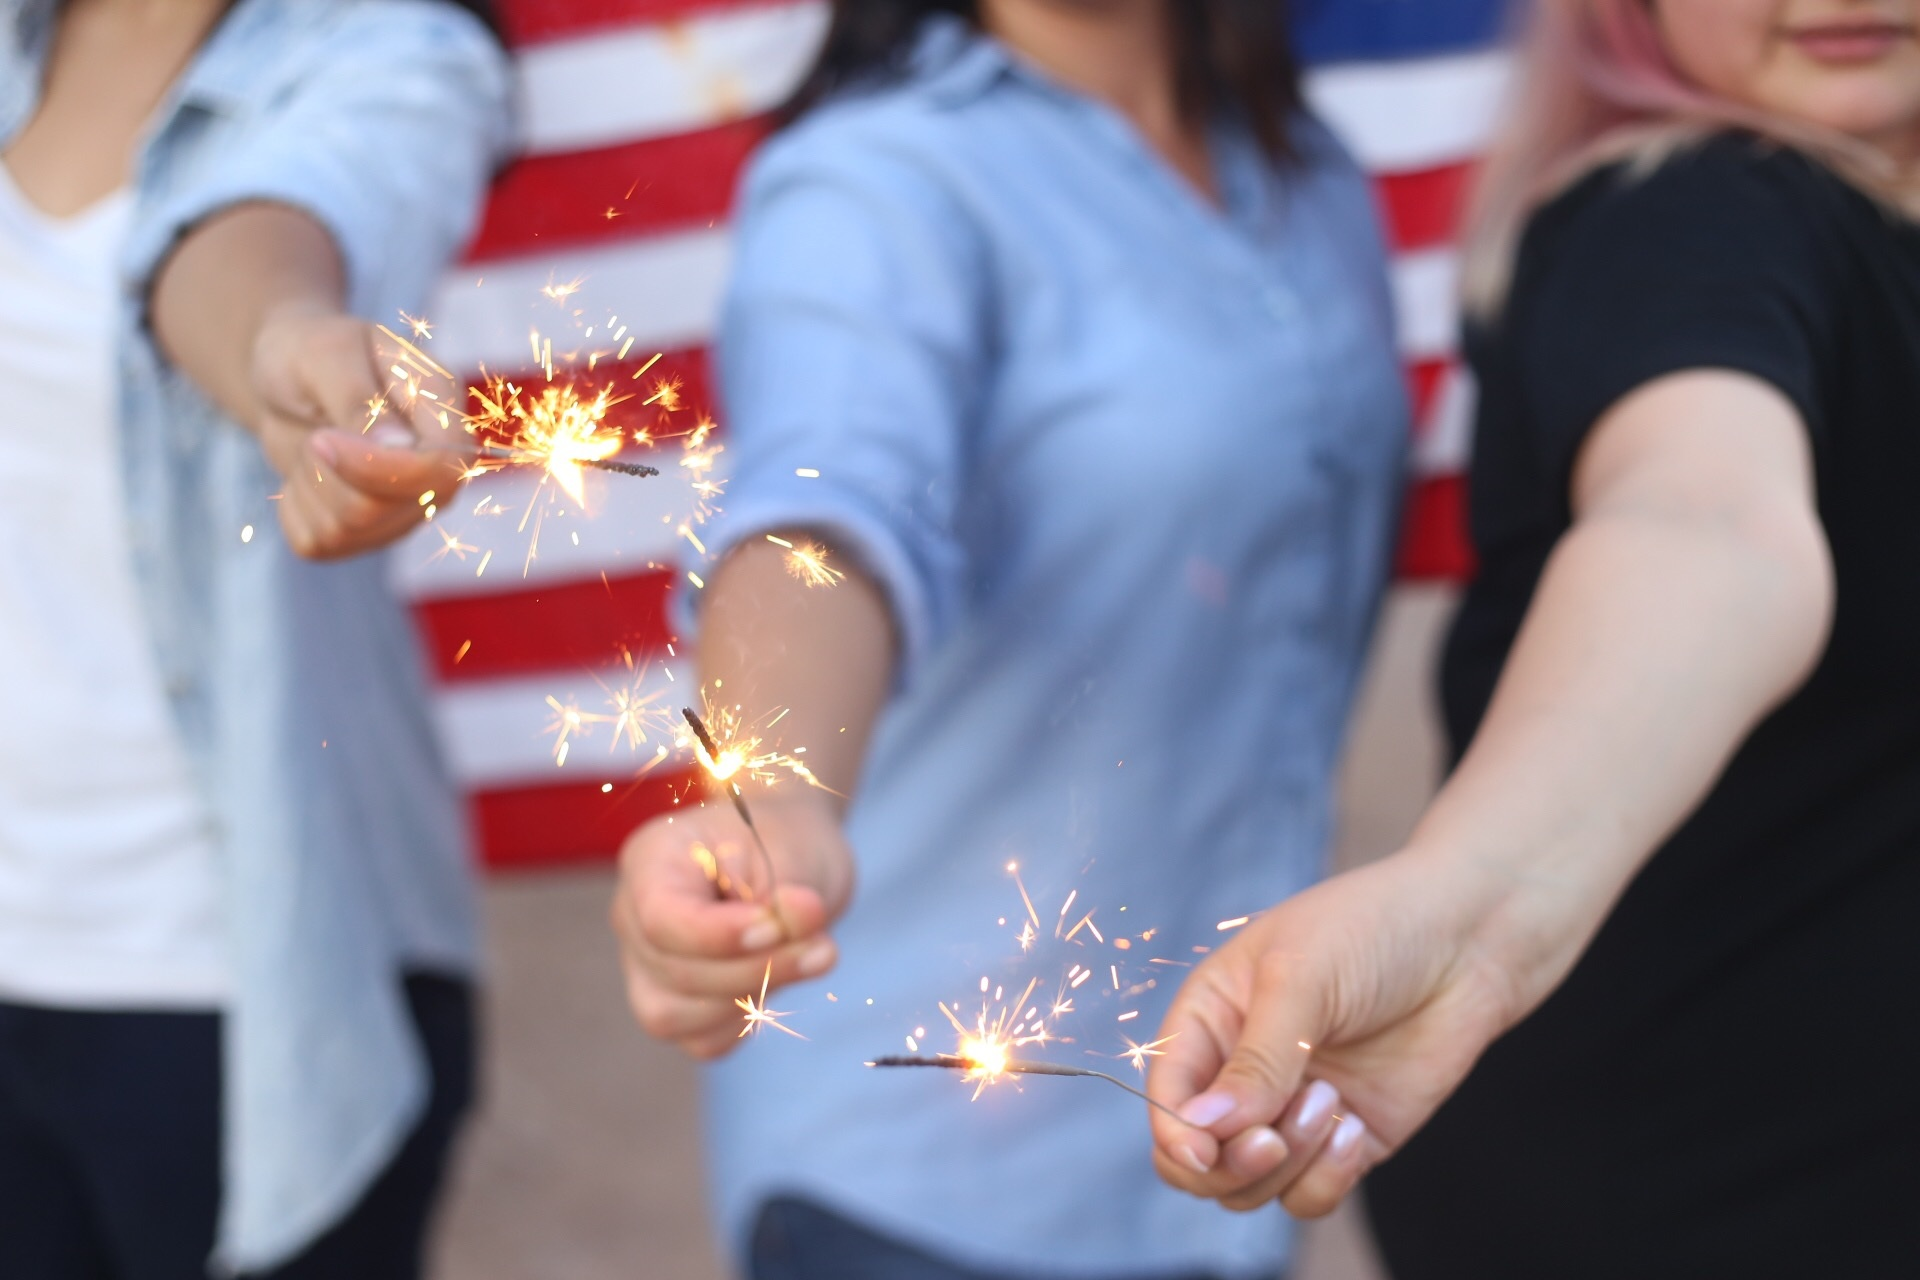 Group of people holding sparklers with The Spirit of Independence Day